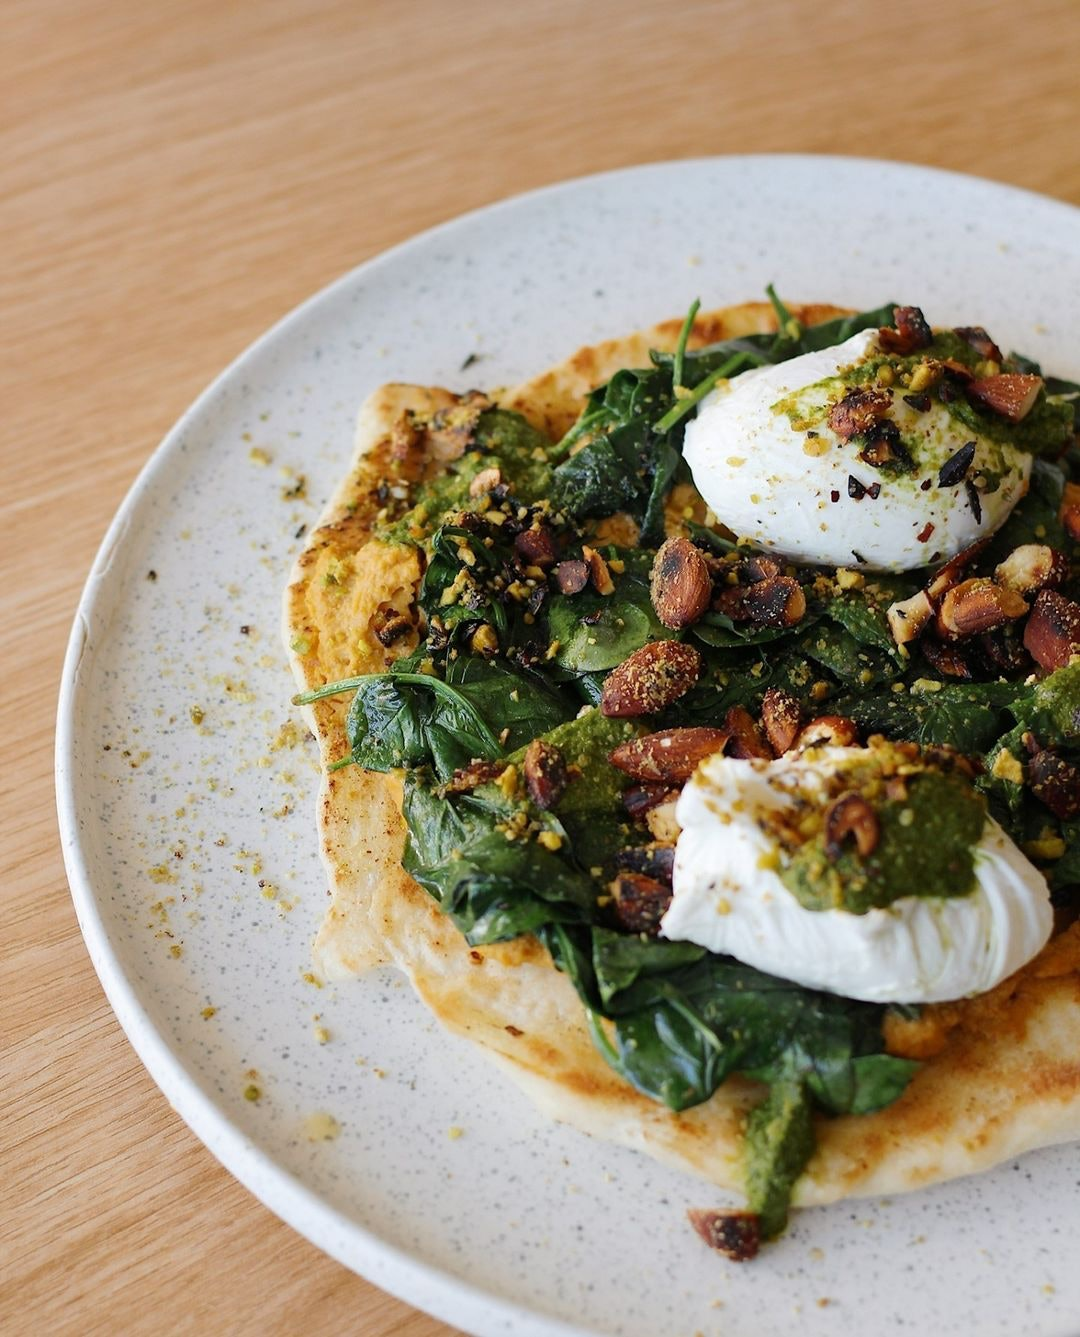 Crepe with poached eggs on top and spinach and eastern spices